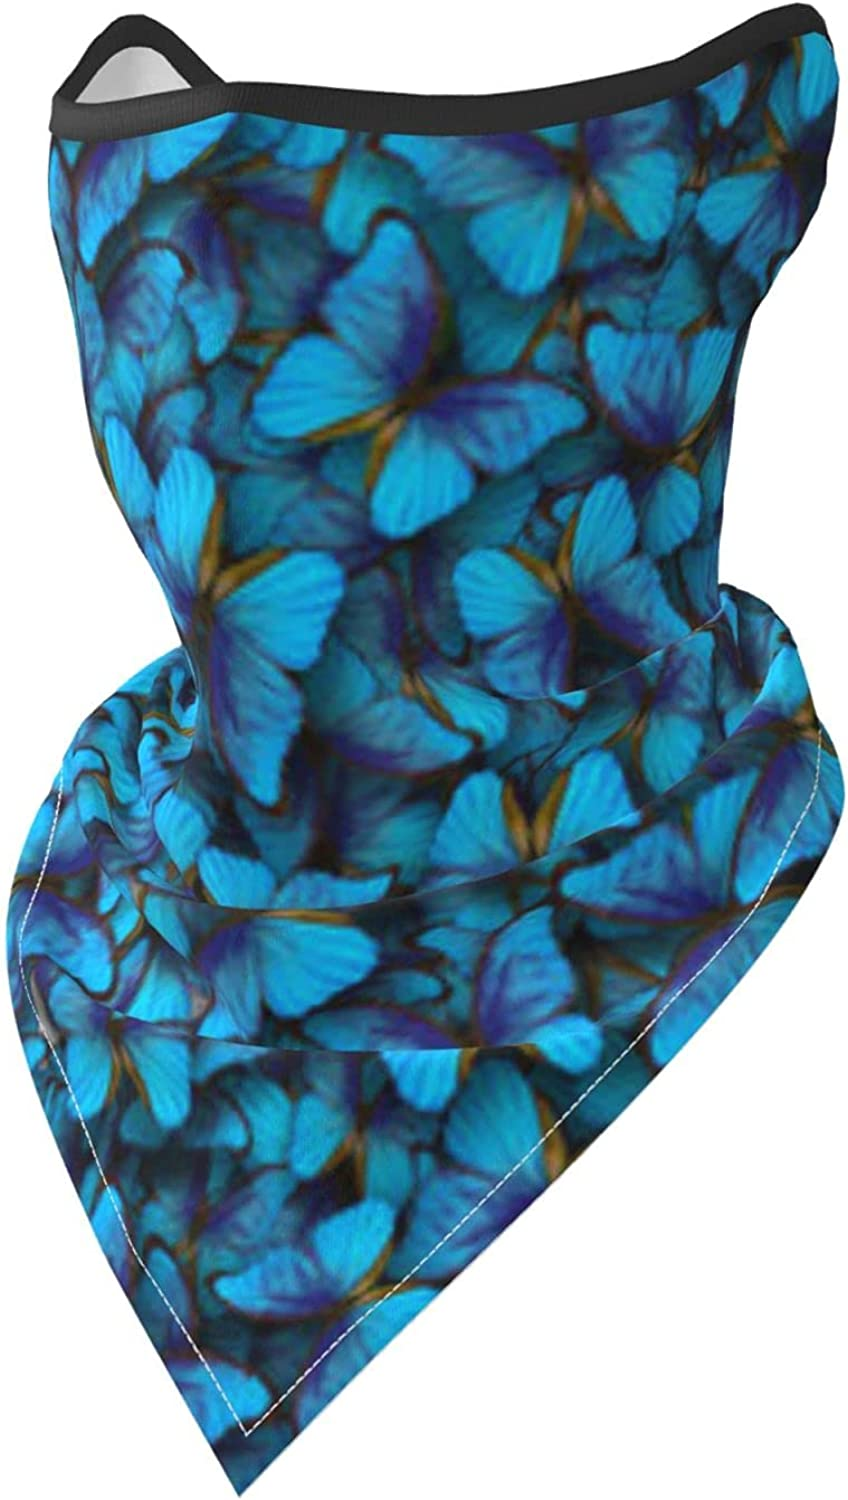 Blue Butterflies Breathable Bandana Face Mask Neck Gaiter Windproof Sports Mask Scarf Headwear for Men Women Outdoor Hiking Cycling Running Motorcycling